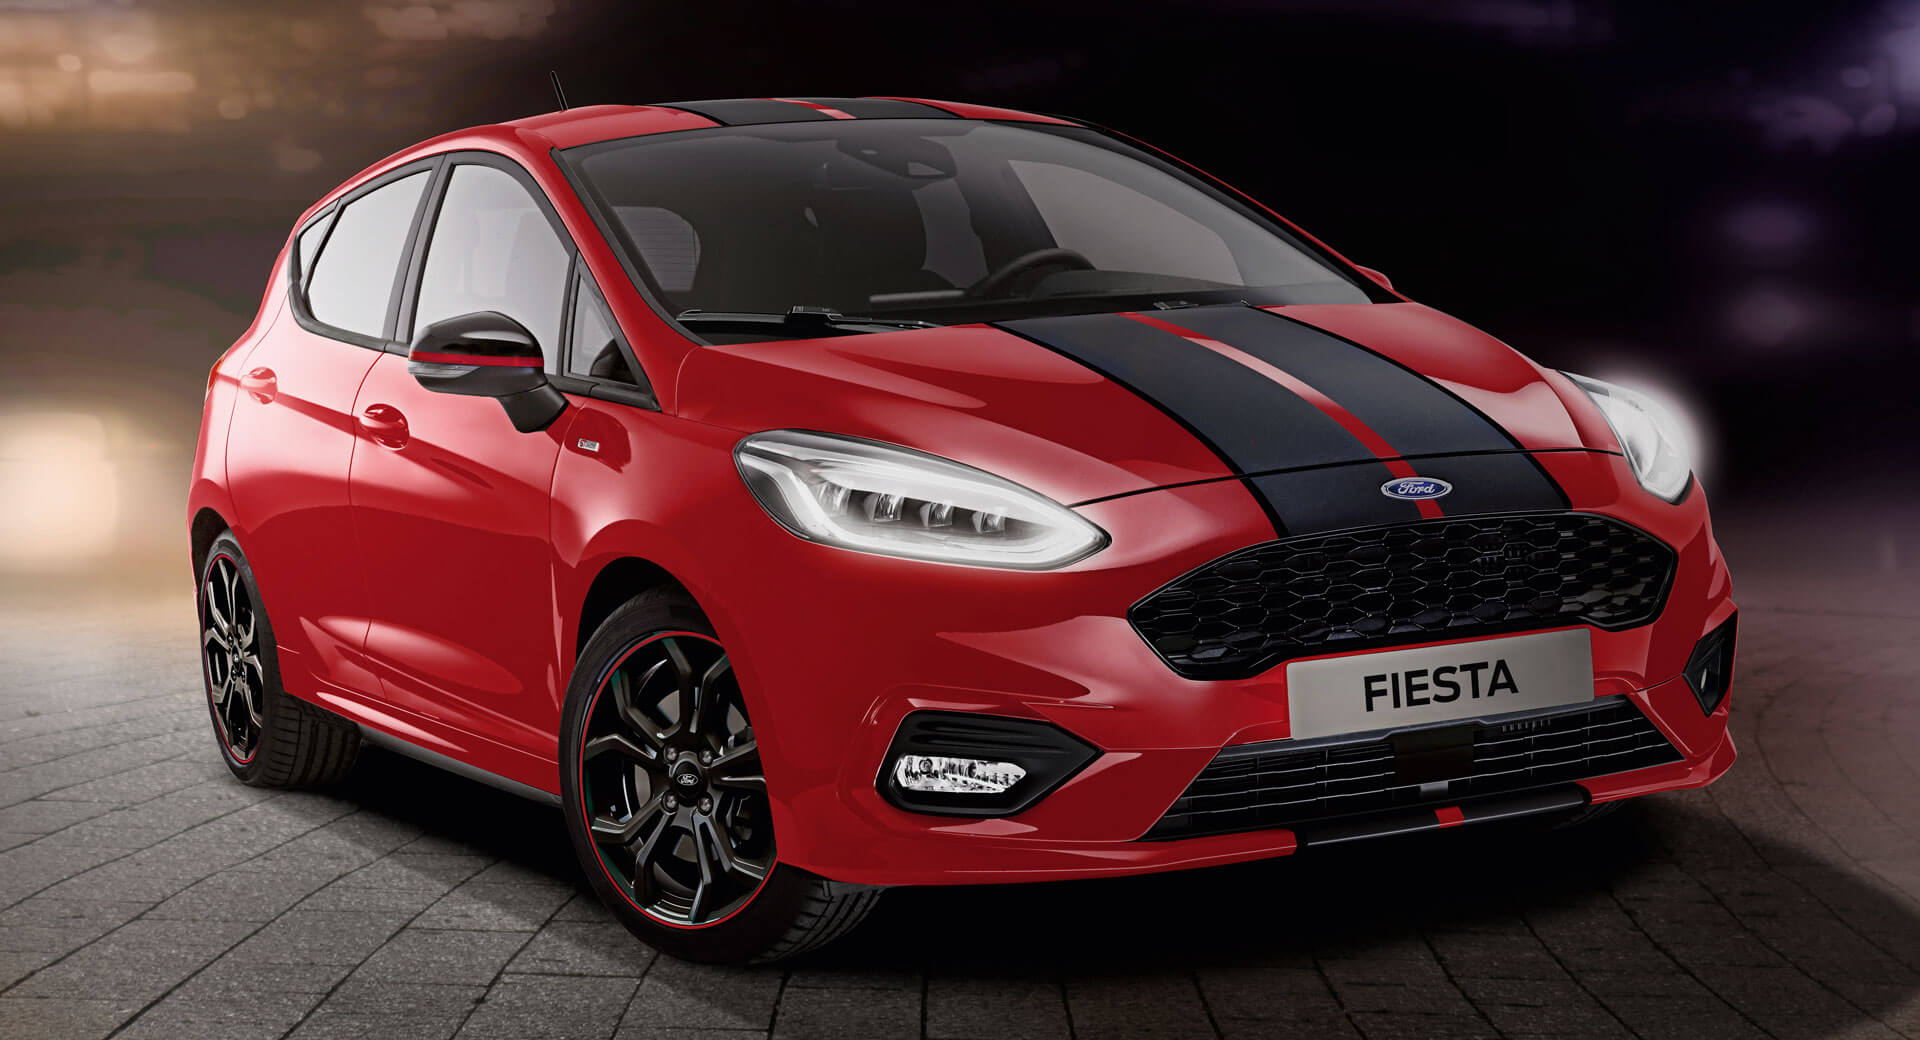 2019 ford fiesta st line red and black editions prove stripes go with everything carscoops